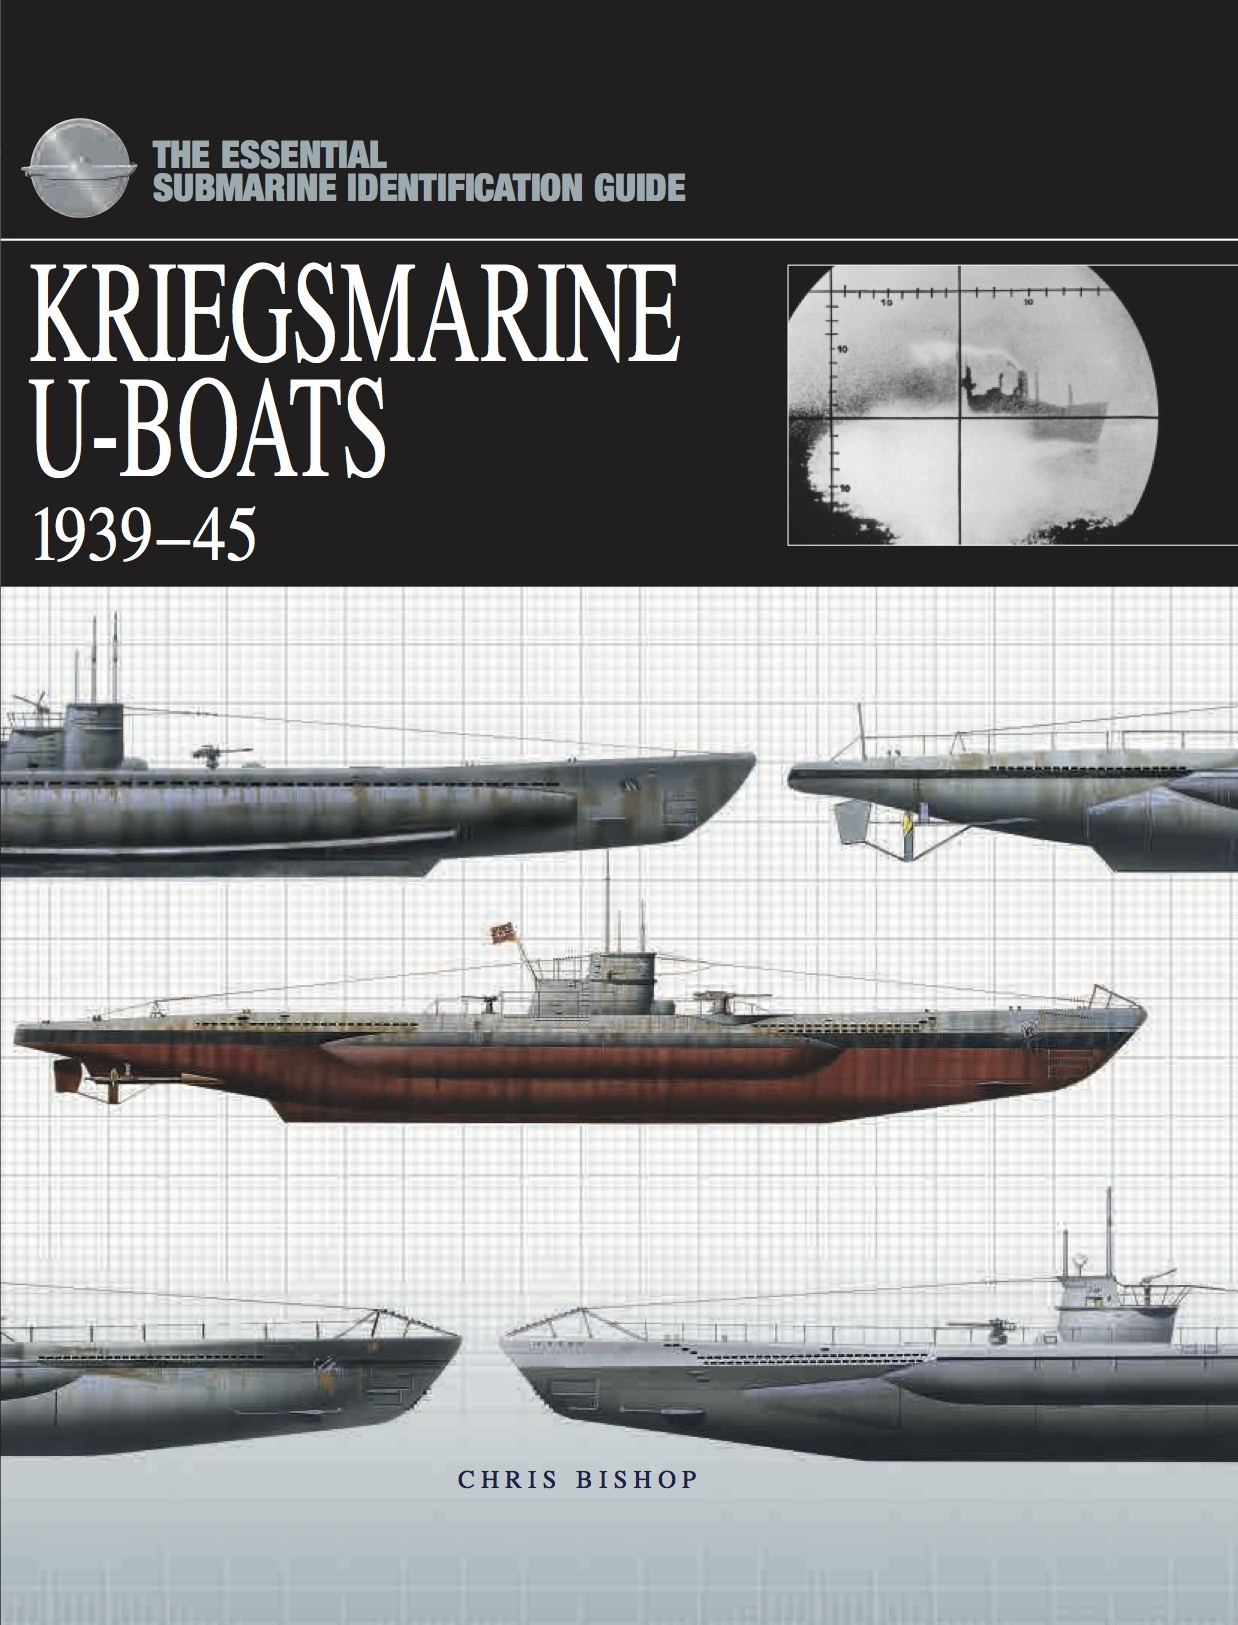 Kriegsmarine U-Boats 1939-45: Essential Submarine Identification Guide